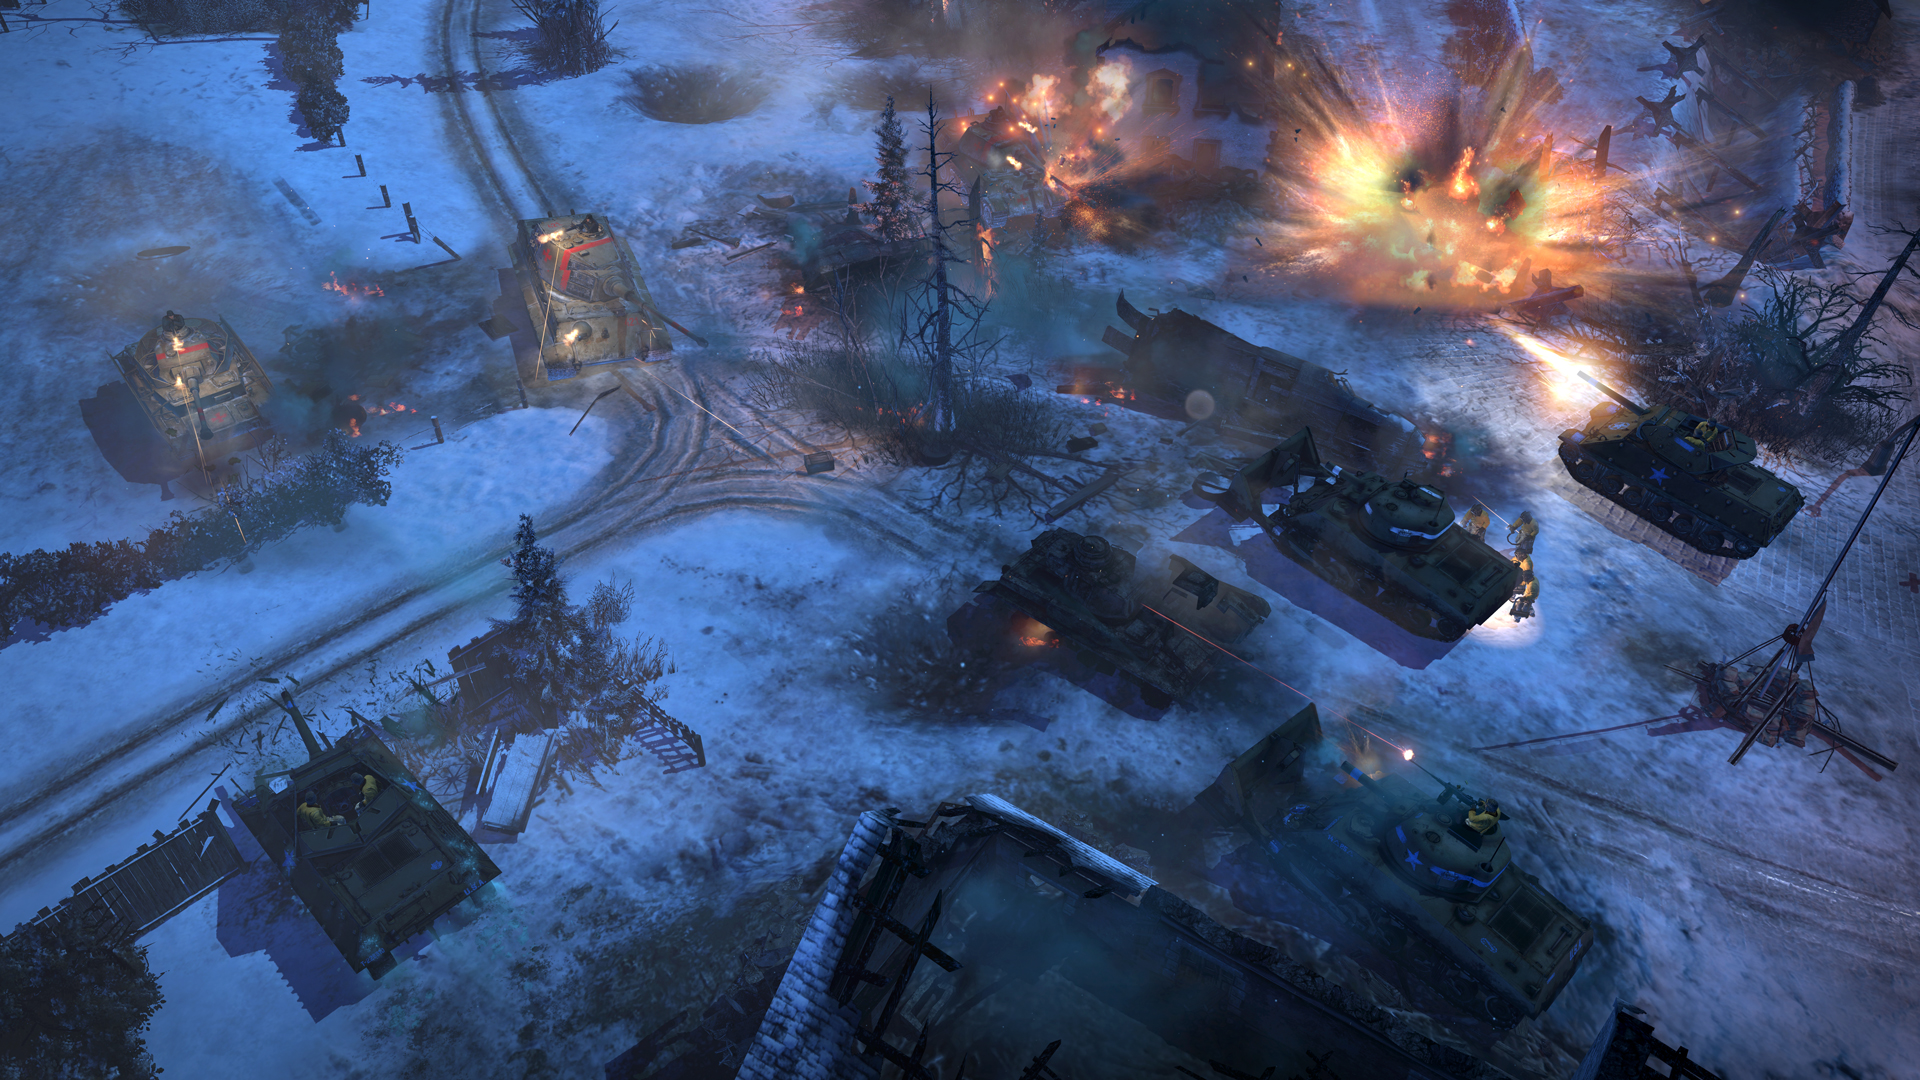 aa screenshot 3 - Company of Heroes 2: Ardennes Assault Review